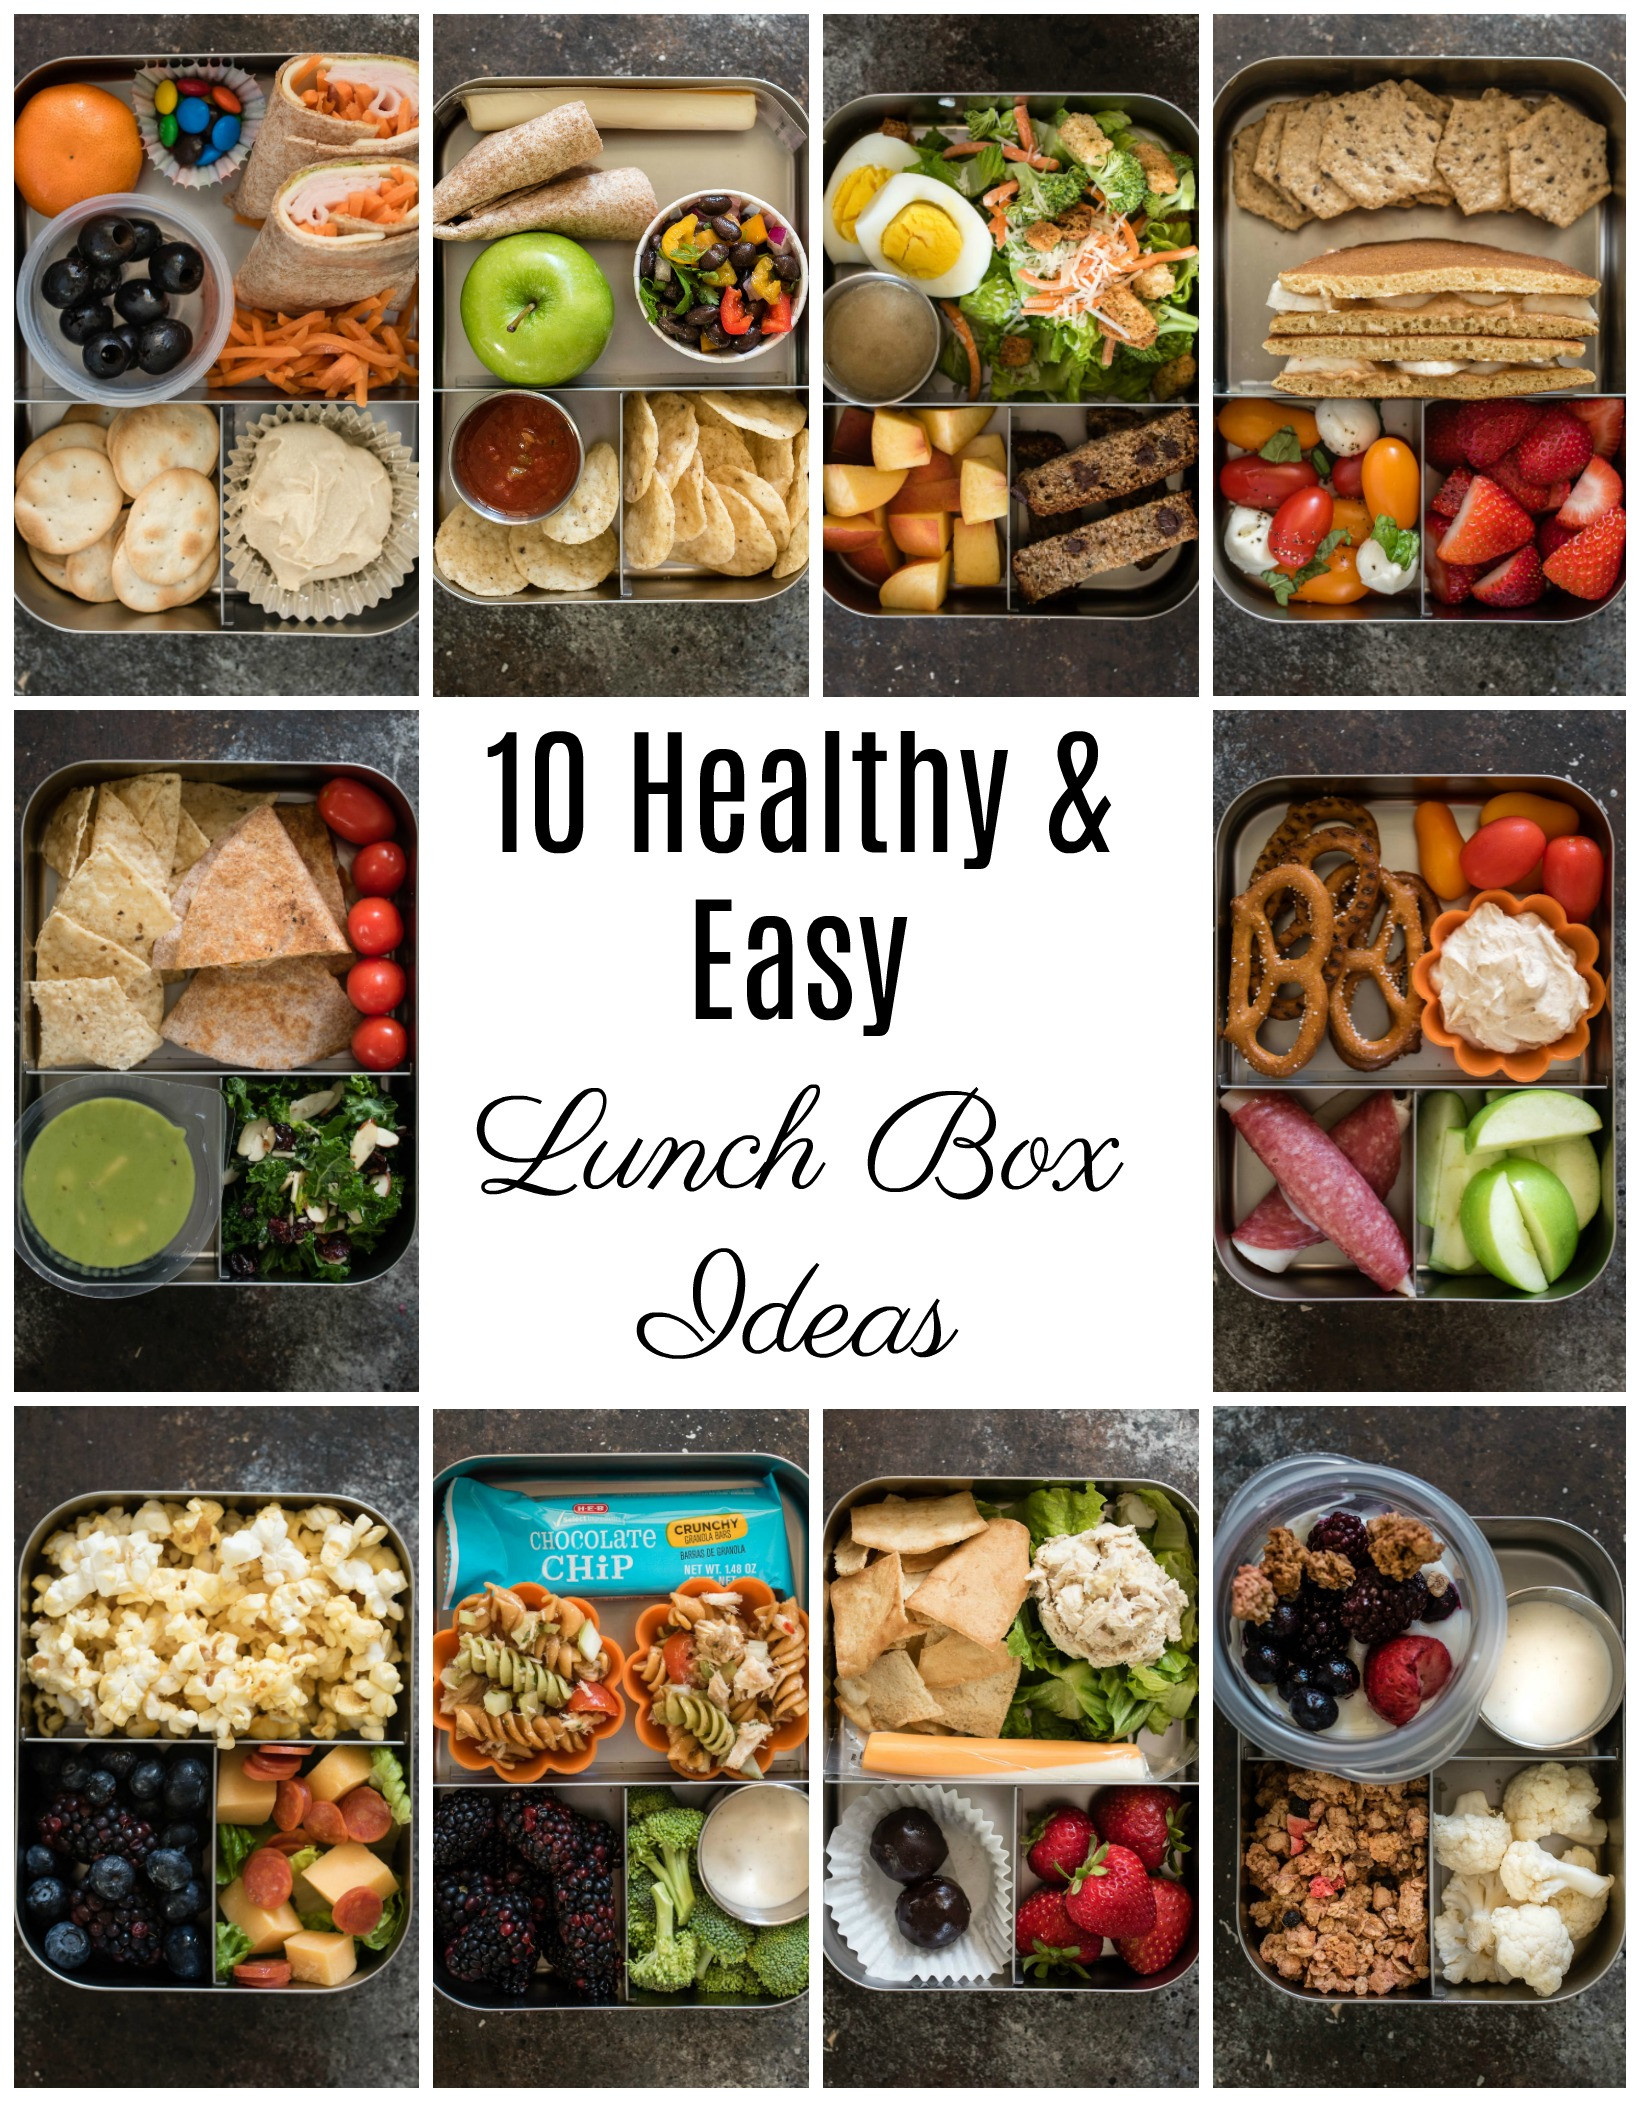 Ideas For Healthy Lunches  10 Healthy Lunch Box Ideas